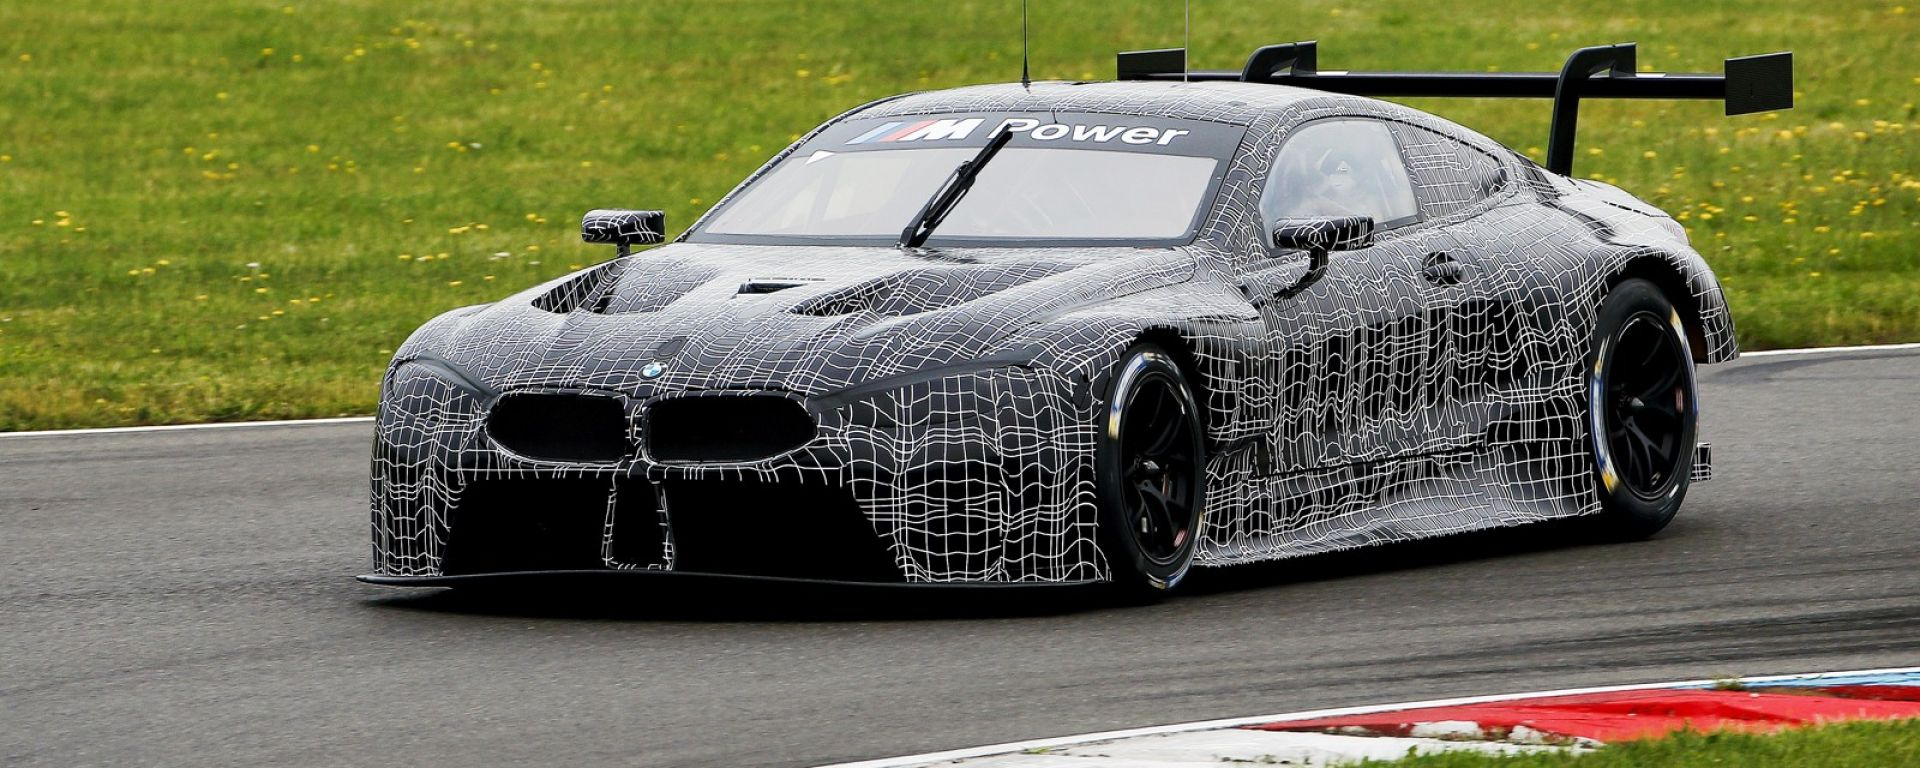 Esordio in pista per la BMW M8 GTE all' EuroSpeedway LausitzringEast in Germania